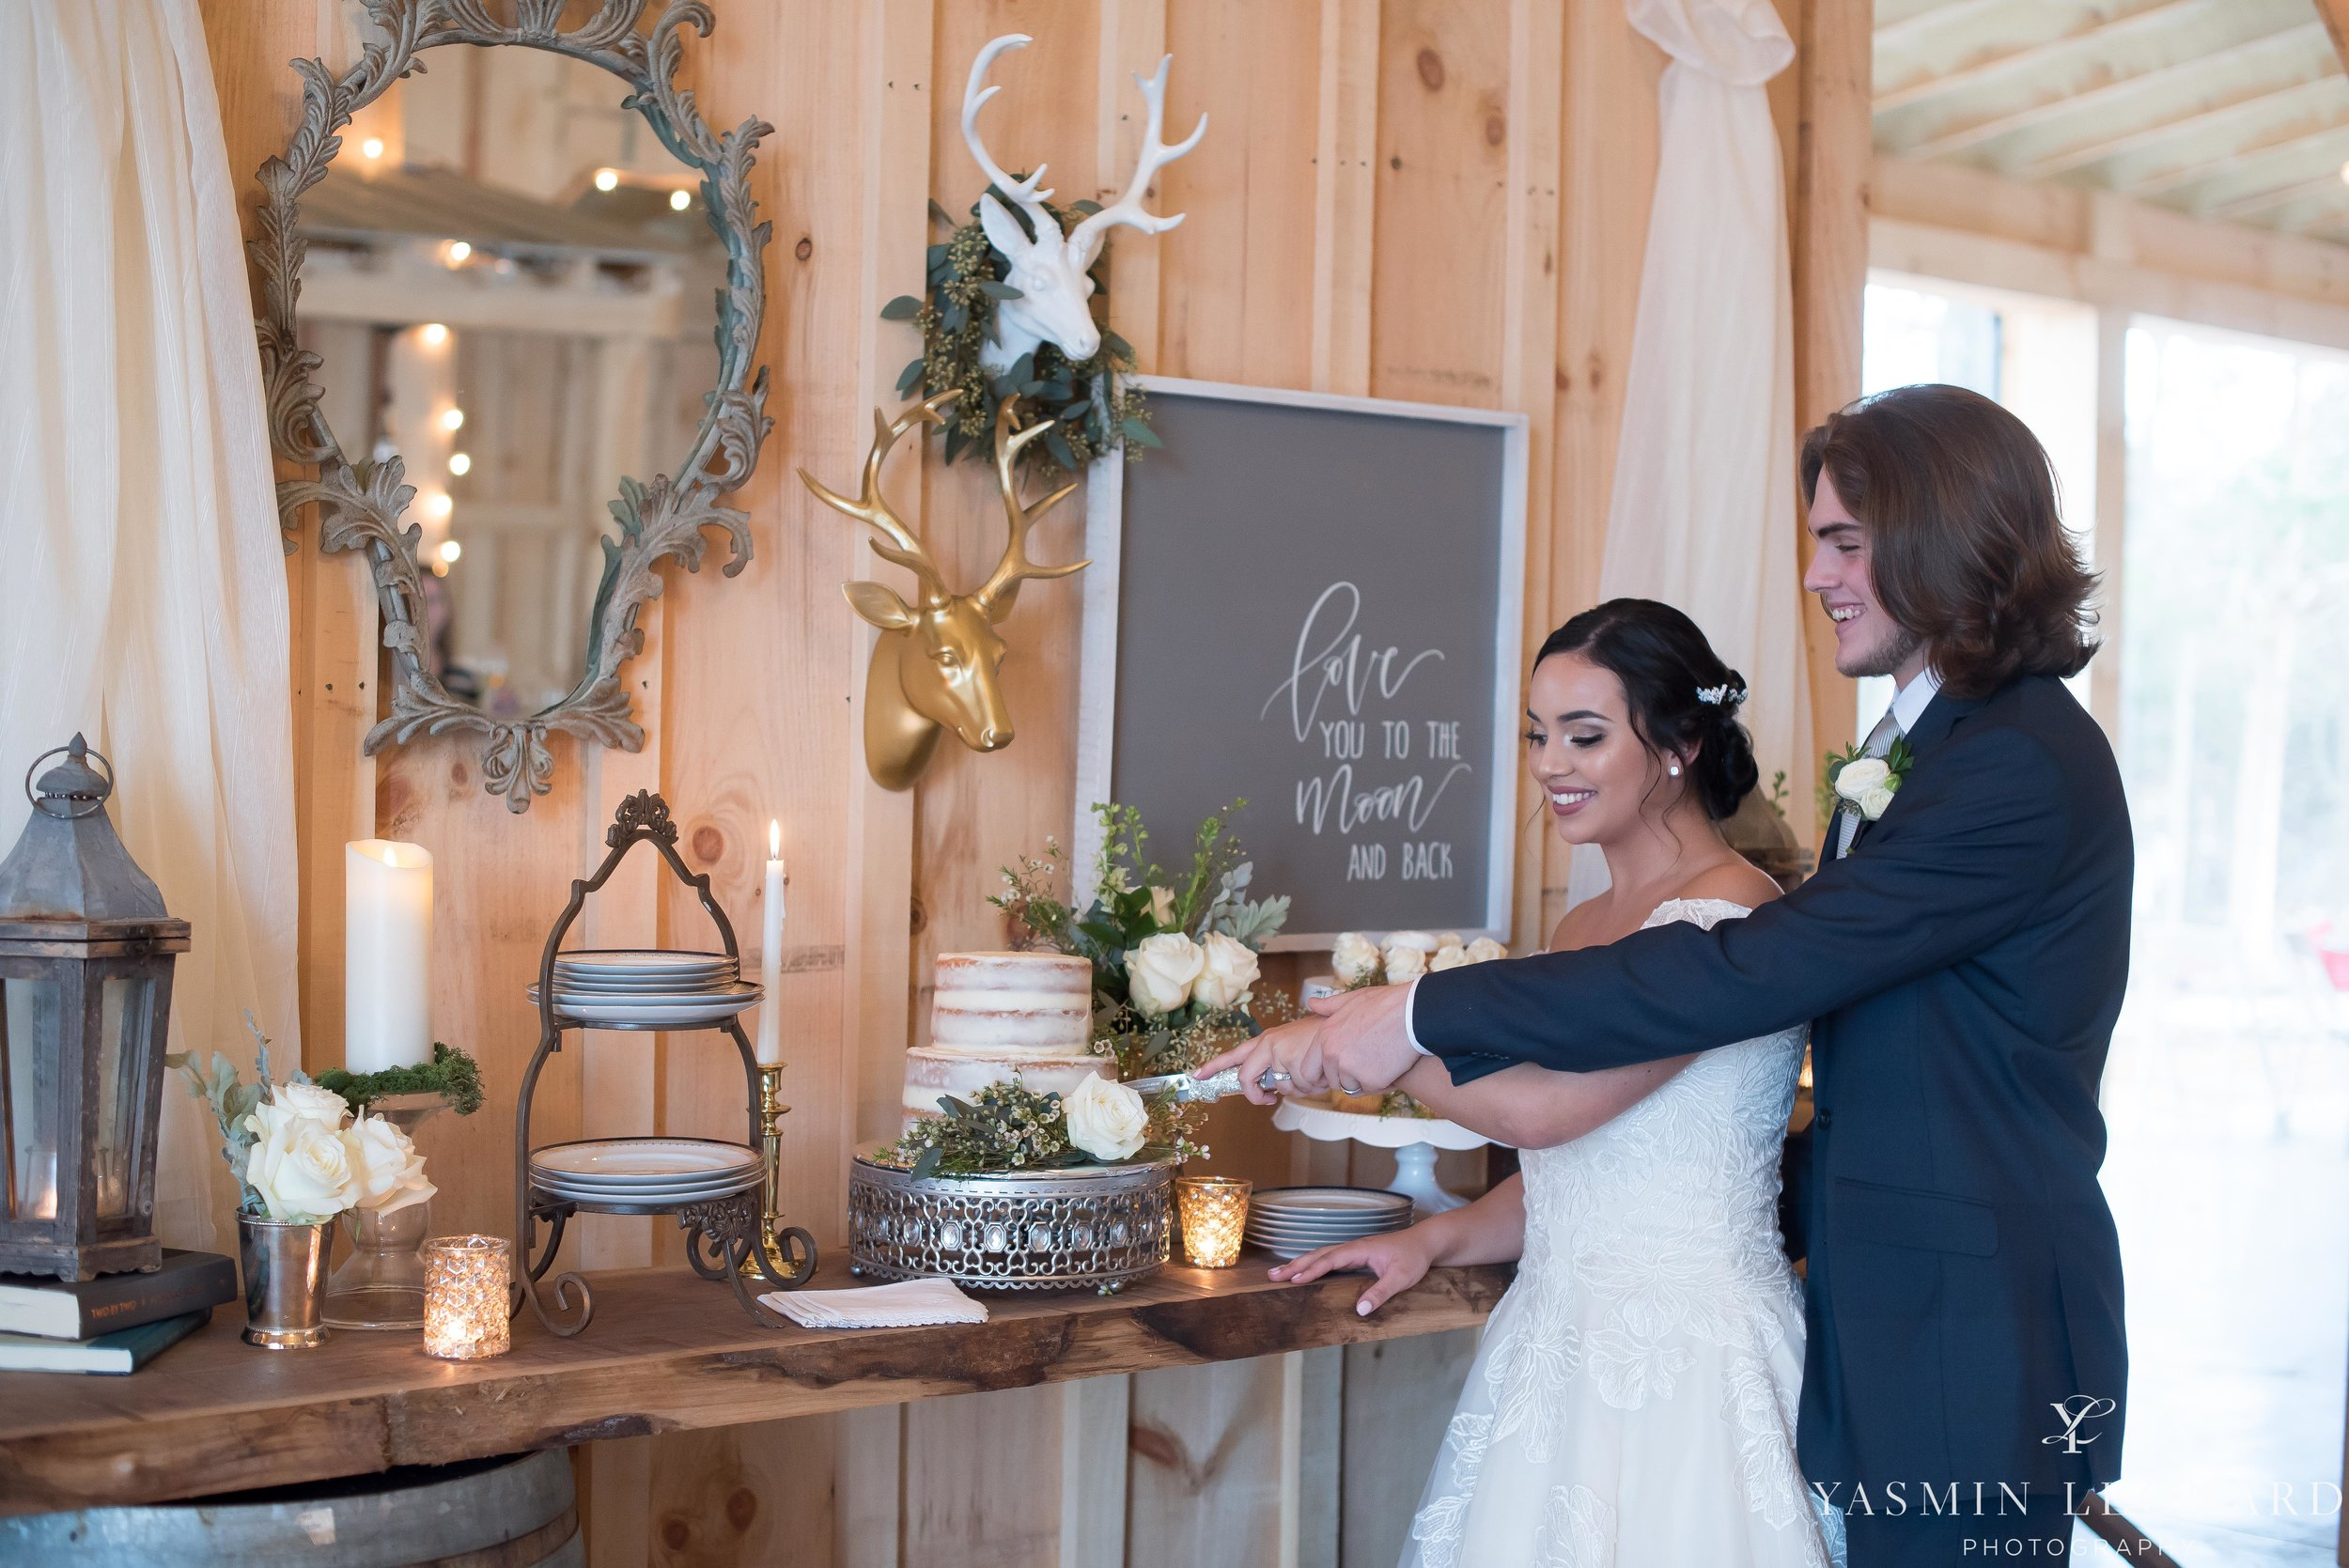 Old Homeplace Vineyard - Grits and Glitter - Dashing Dames Bridal Boutique - Just Priceless - Yasmin Leonard Photography - High Point Weddings - NC Weddings - NC Wedding Venues - High Point Jewelers - NC Wines - NC Vineyards - Cupcake Cuties-70.jpg